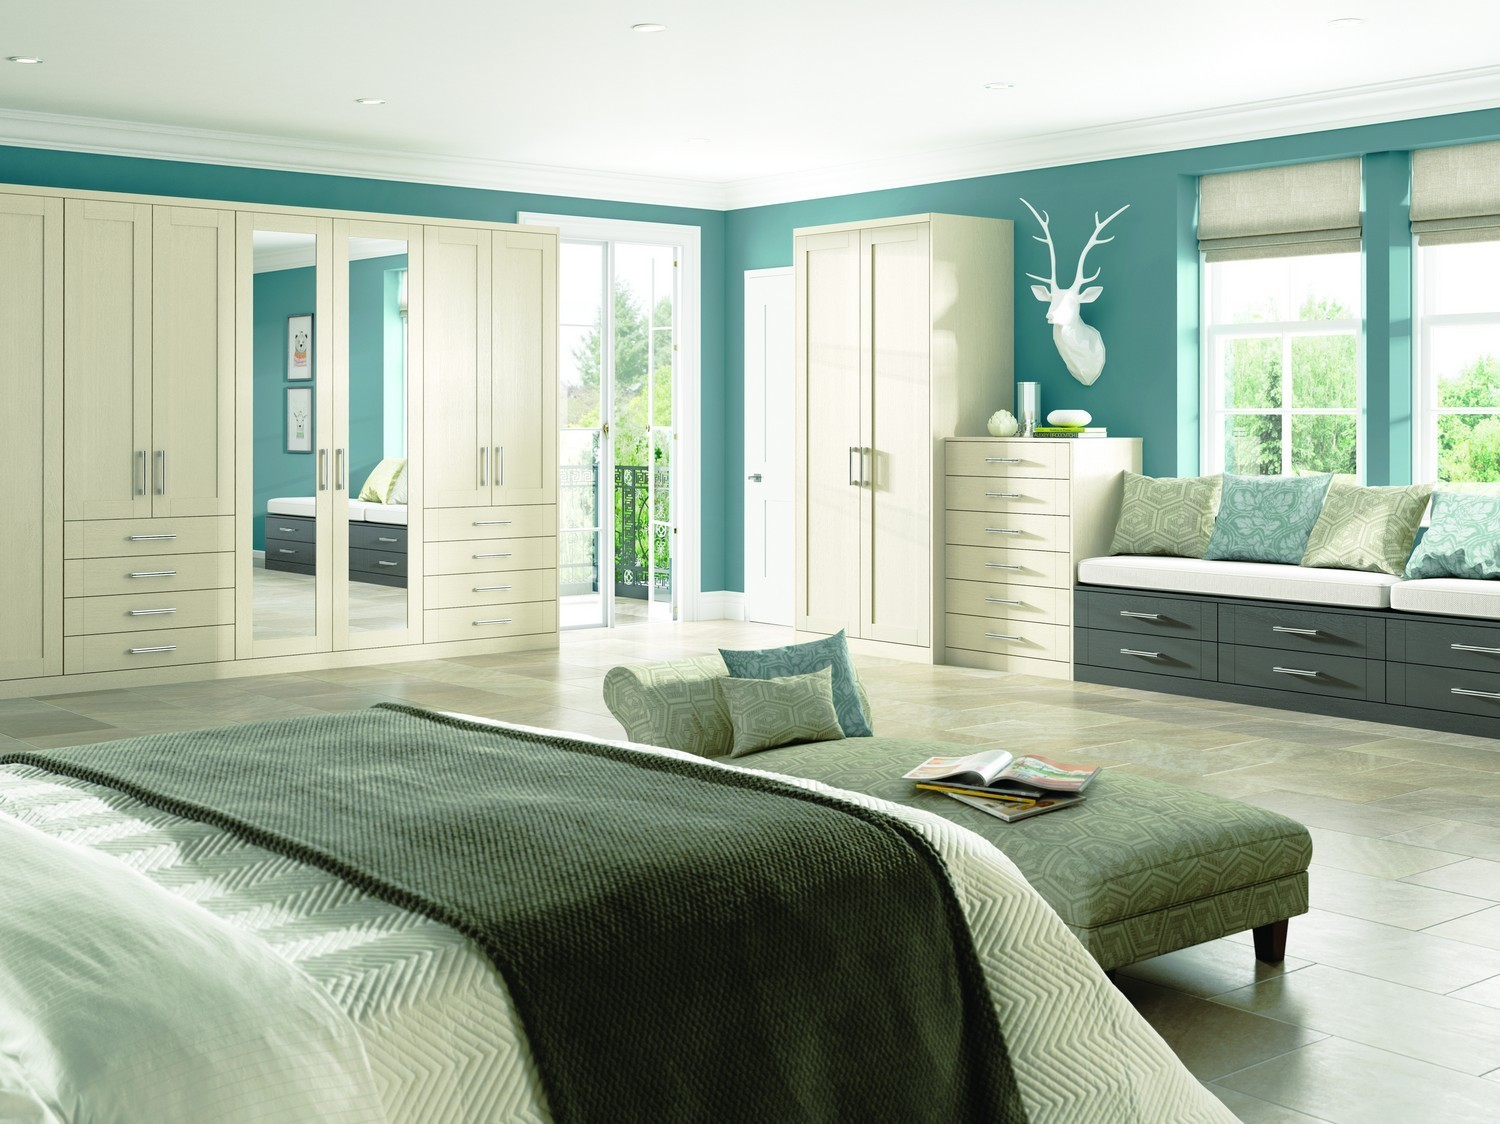 Oyster and anthracite grey bedroom furniture set with a woodgrain finish and two mirrored doors. This fitted bedroom furniture features a large seating area with more storage. The two-tone colour system gives a contemporary feel to this bedroom.